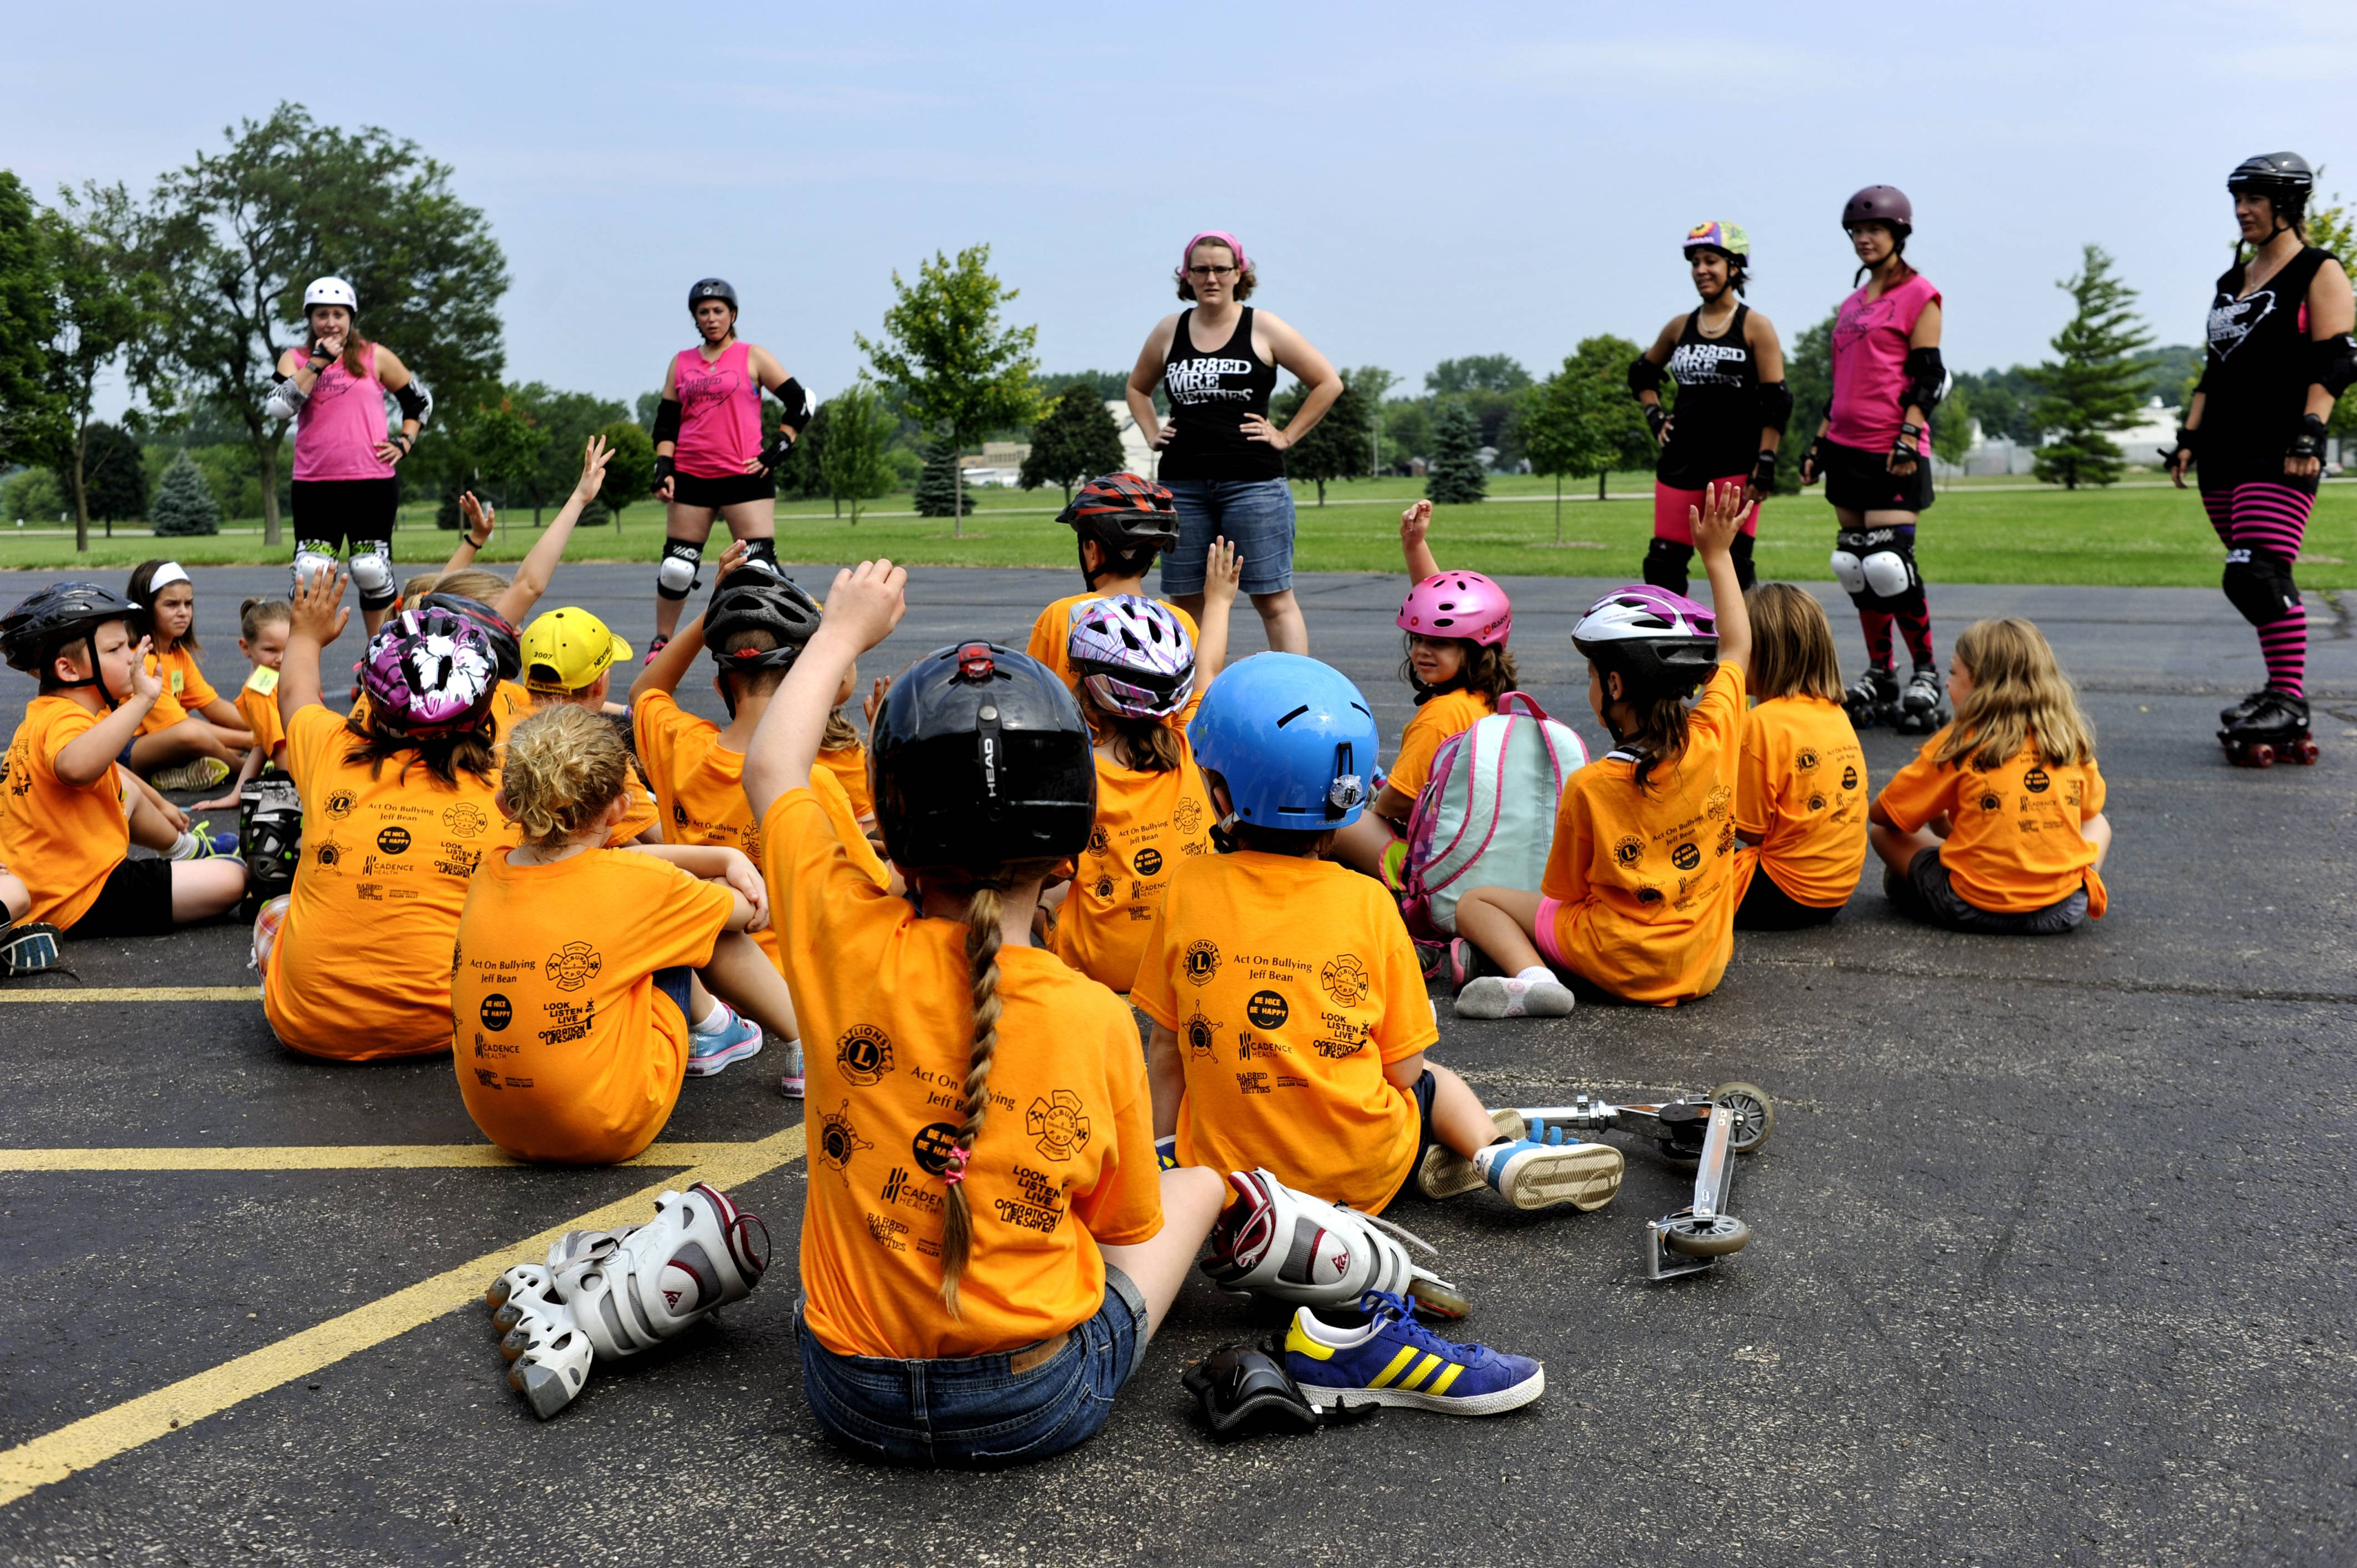 The Barbed Wire Betties, DeKalb's Roller Derby League instruct kids about skating safety during the Safety Camp for Kids at Elburn Lions Club on Tuesday. The two-day camp was free for kids ages 7-10 and taught them about how to stay safe in a variety of situations.